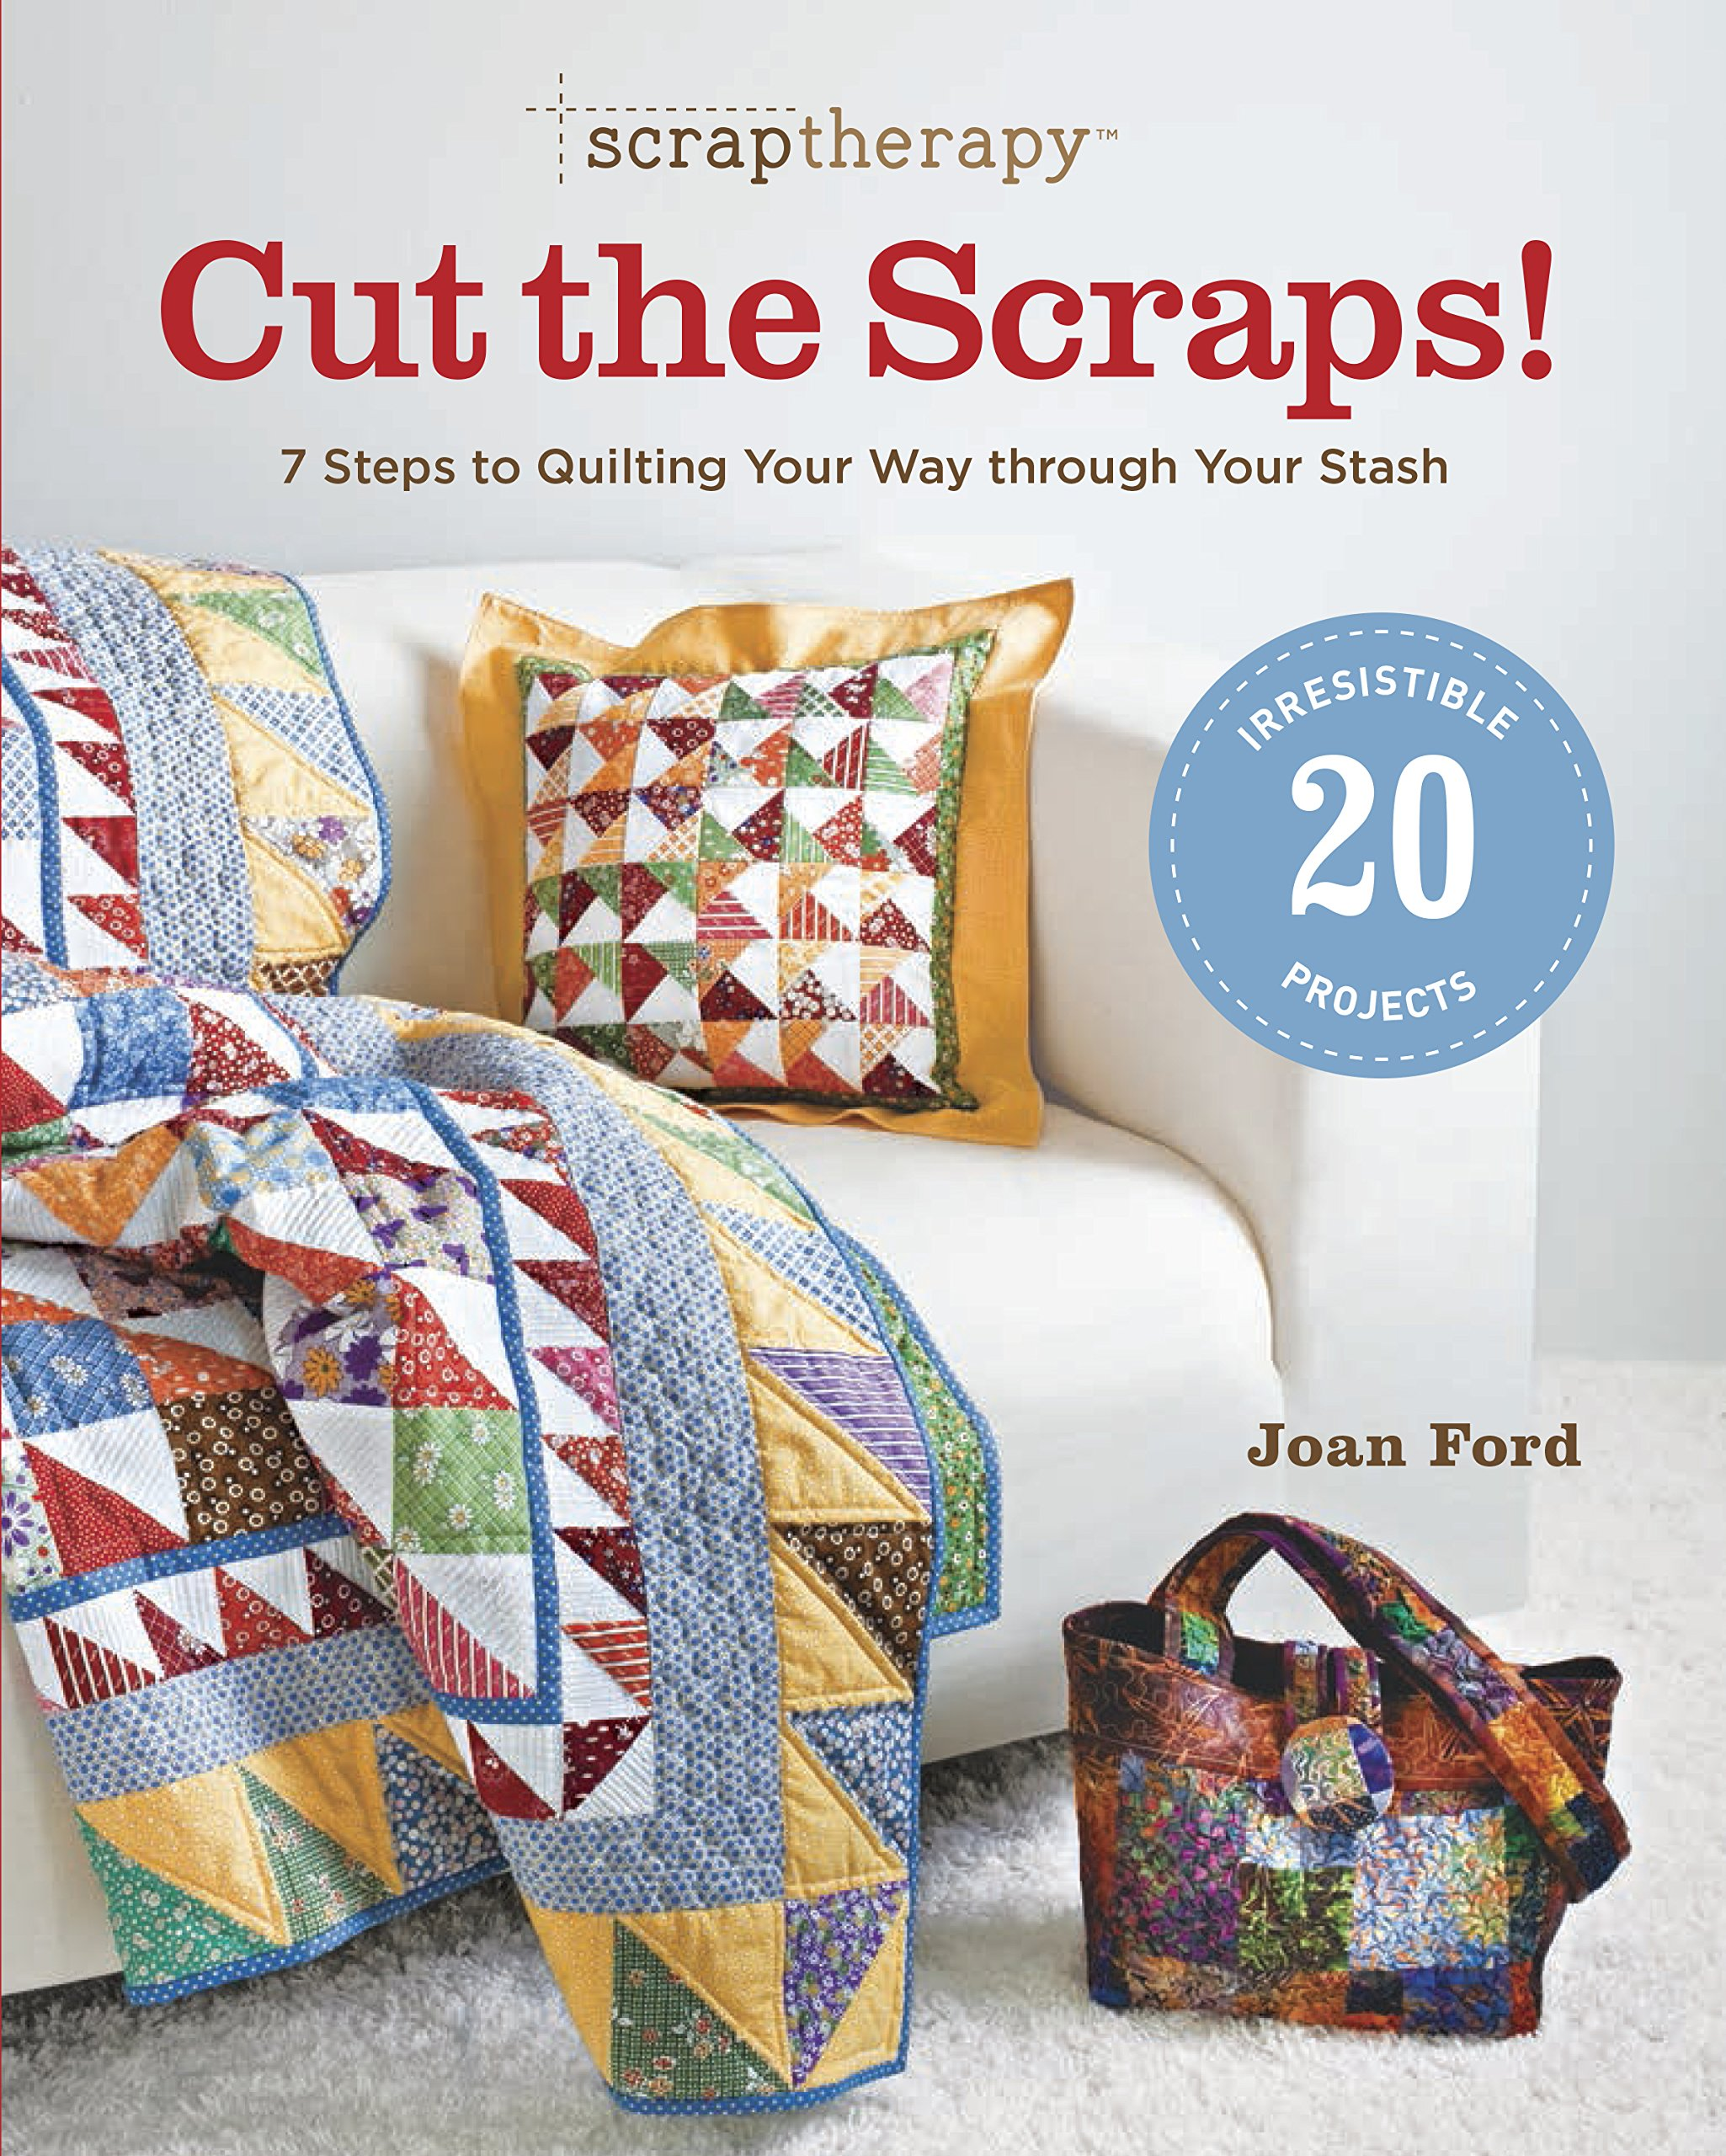 Scraptherapy(r) Cut the Scraps!: 7 Steps to Quilting Your Way Through Your Stash